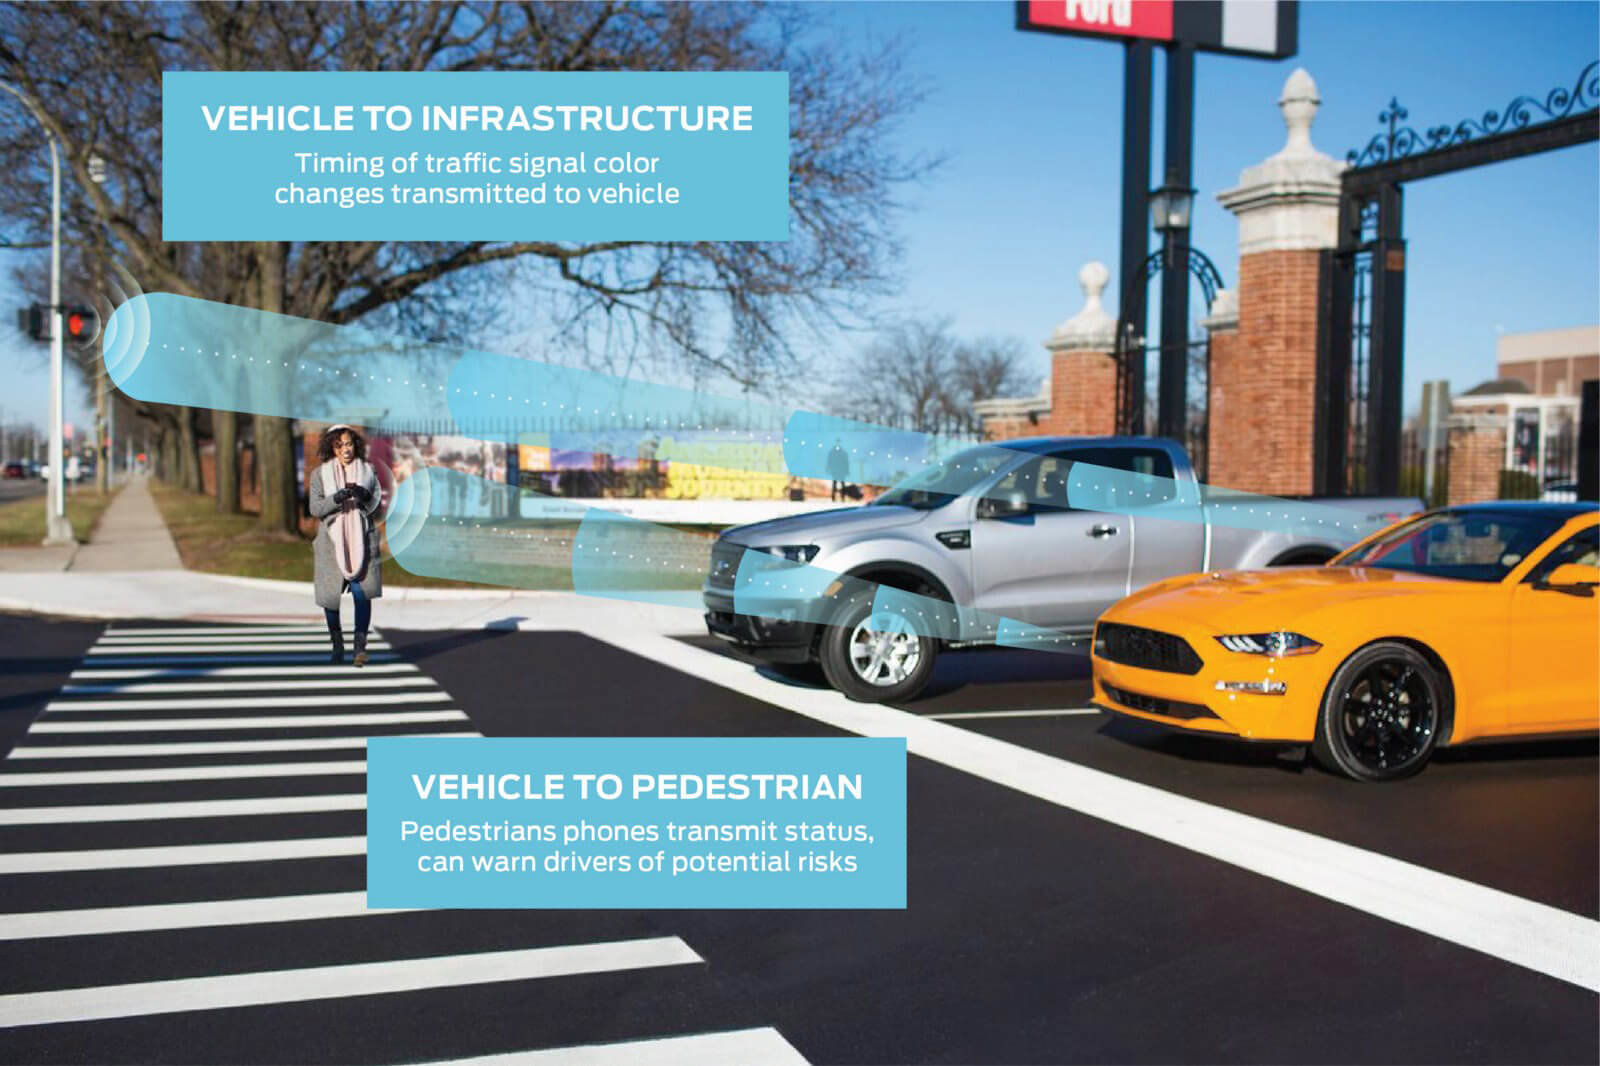 C-V2X wireless communication in vehicles and infrastructure